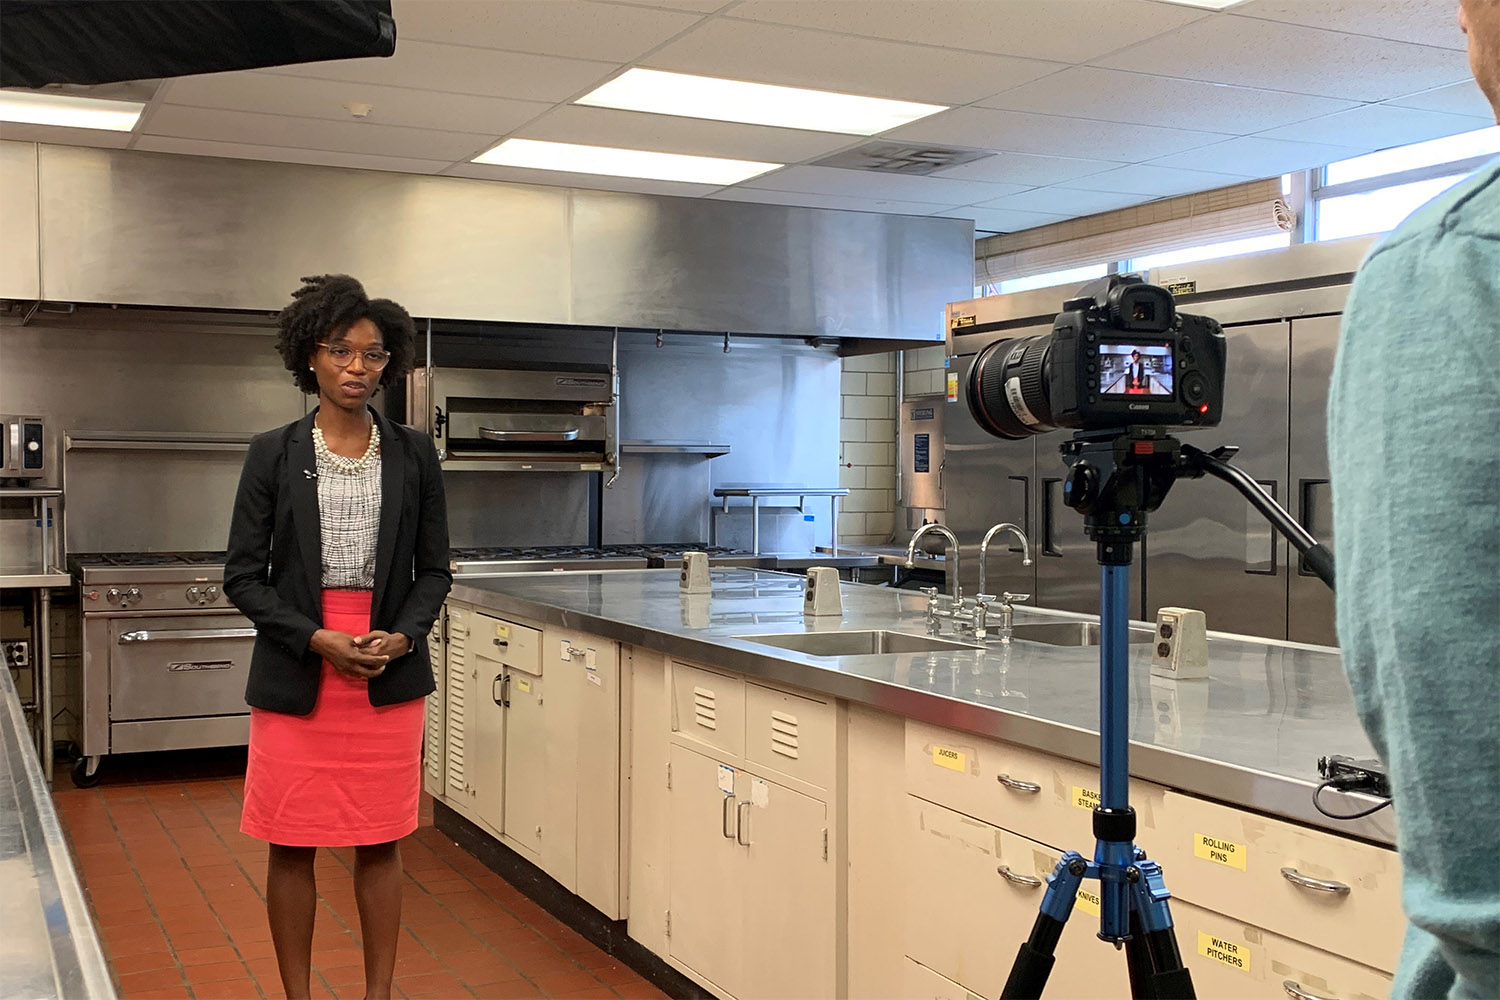 Researcher studying ways to decrease hypertension in Black adults through dietary program